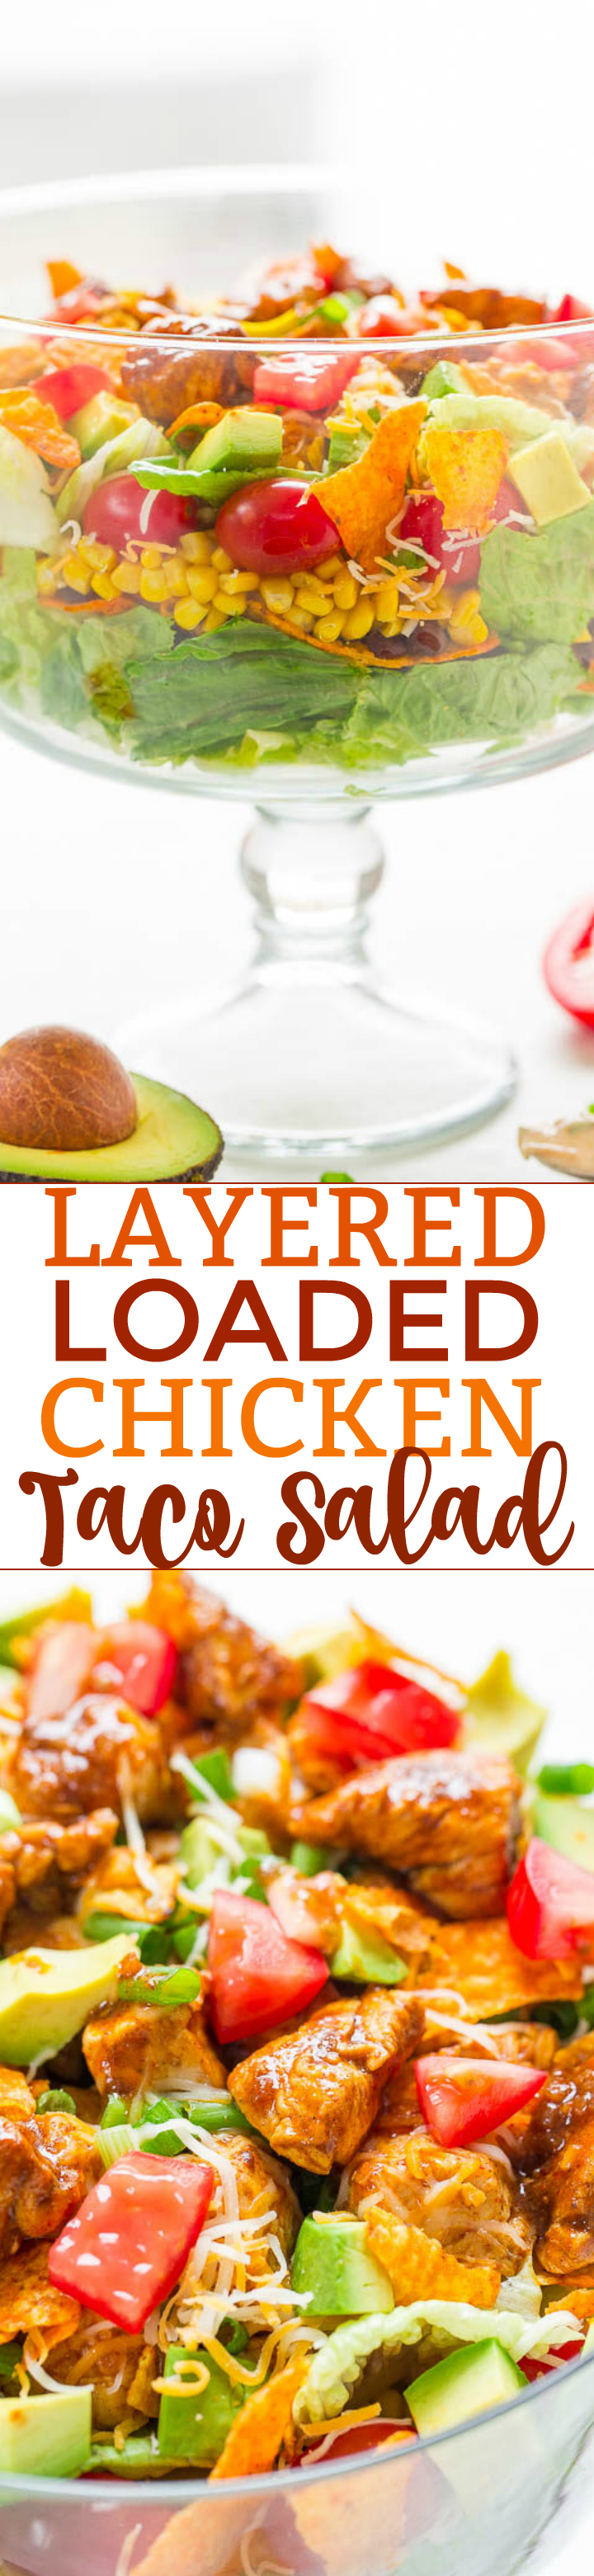 Layered Loaded Chicken Taco Salad - Juicy chicken, avocado, tomatoes, corn, black beans, cheese, tortilla chips, and more in this LOADED salad that's EASY and ready in 15 minutes!! A creamy lime-cilantro dressing adds tons of FLAVOR!!